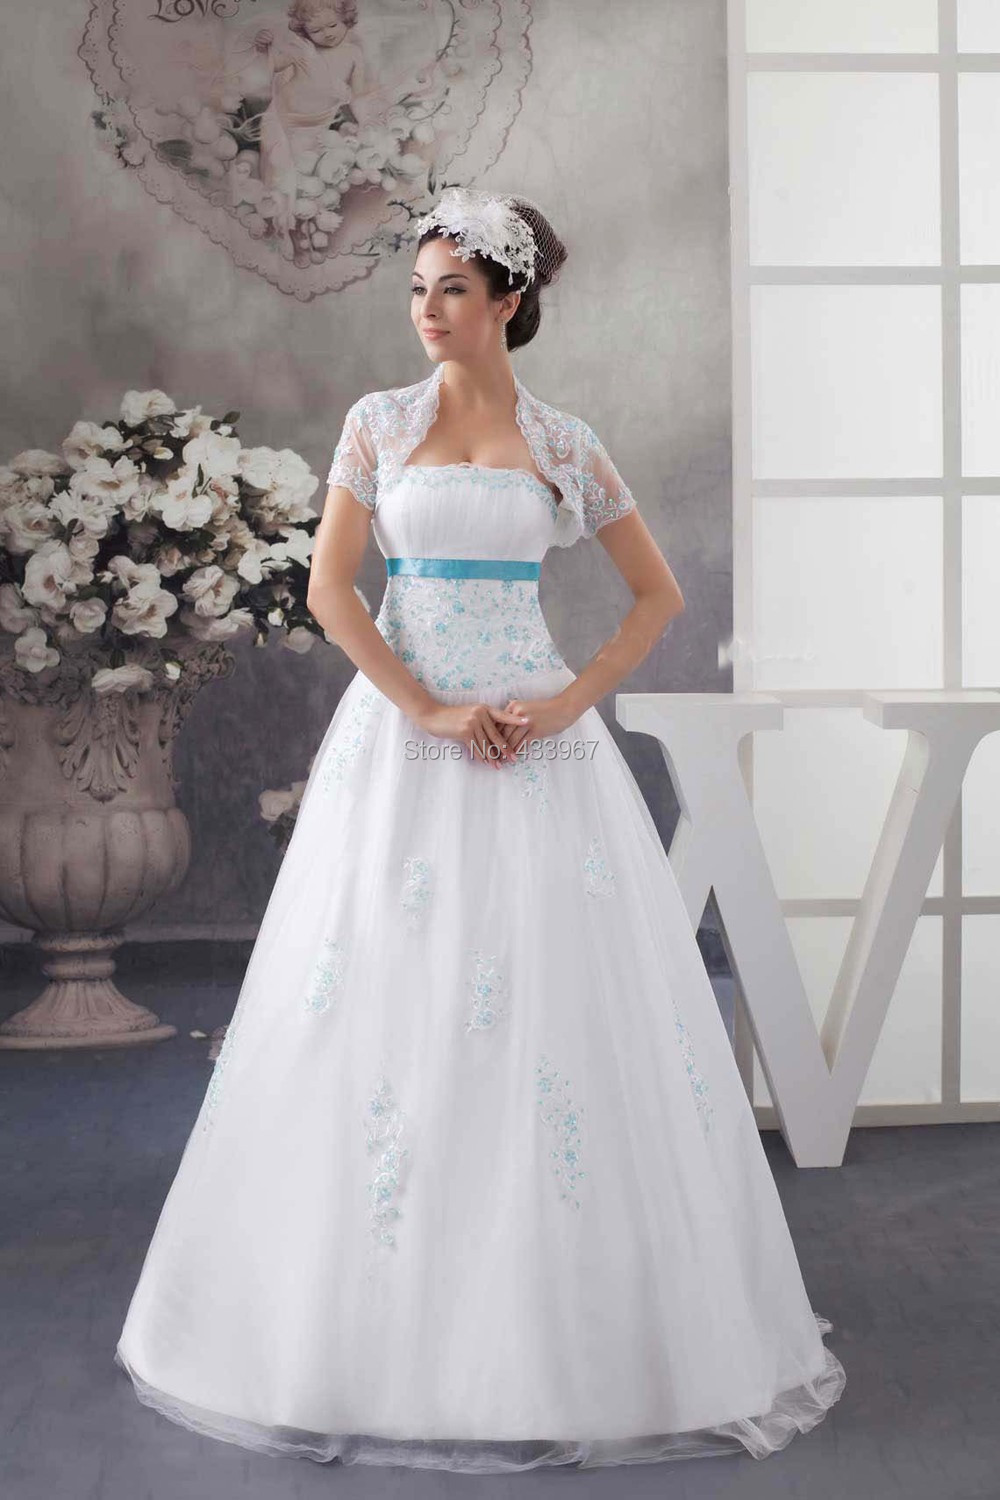 Strapless A Line Long Wedding Dress With Lace Jacket And Turquoise Beads Floor Length Sweep Train Bridal Dresses 2017 New In From Weddings